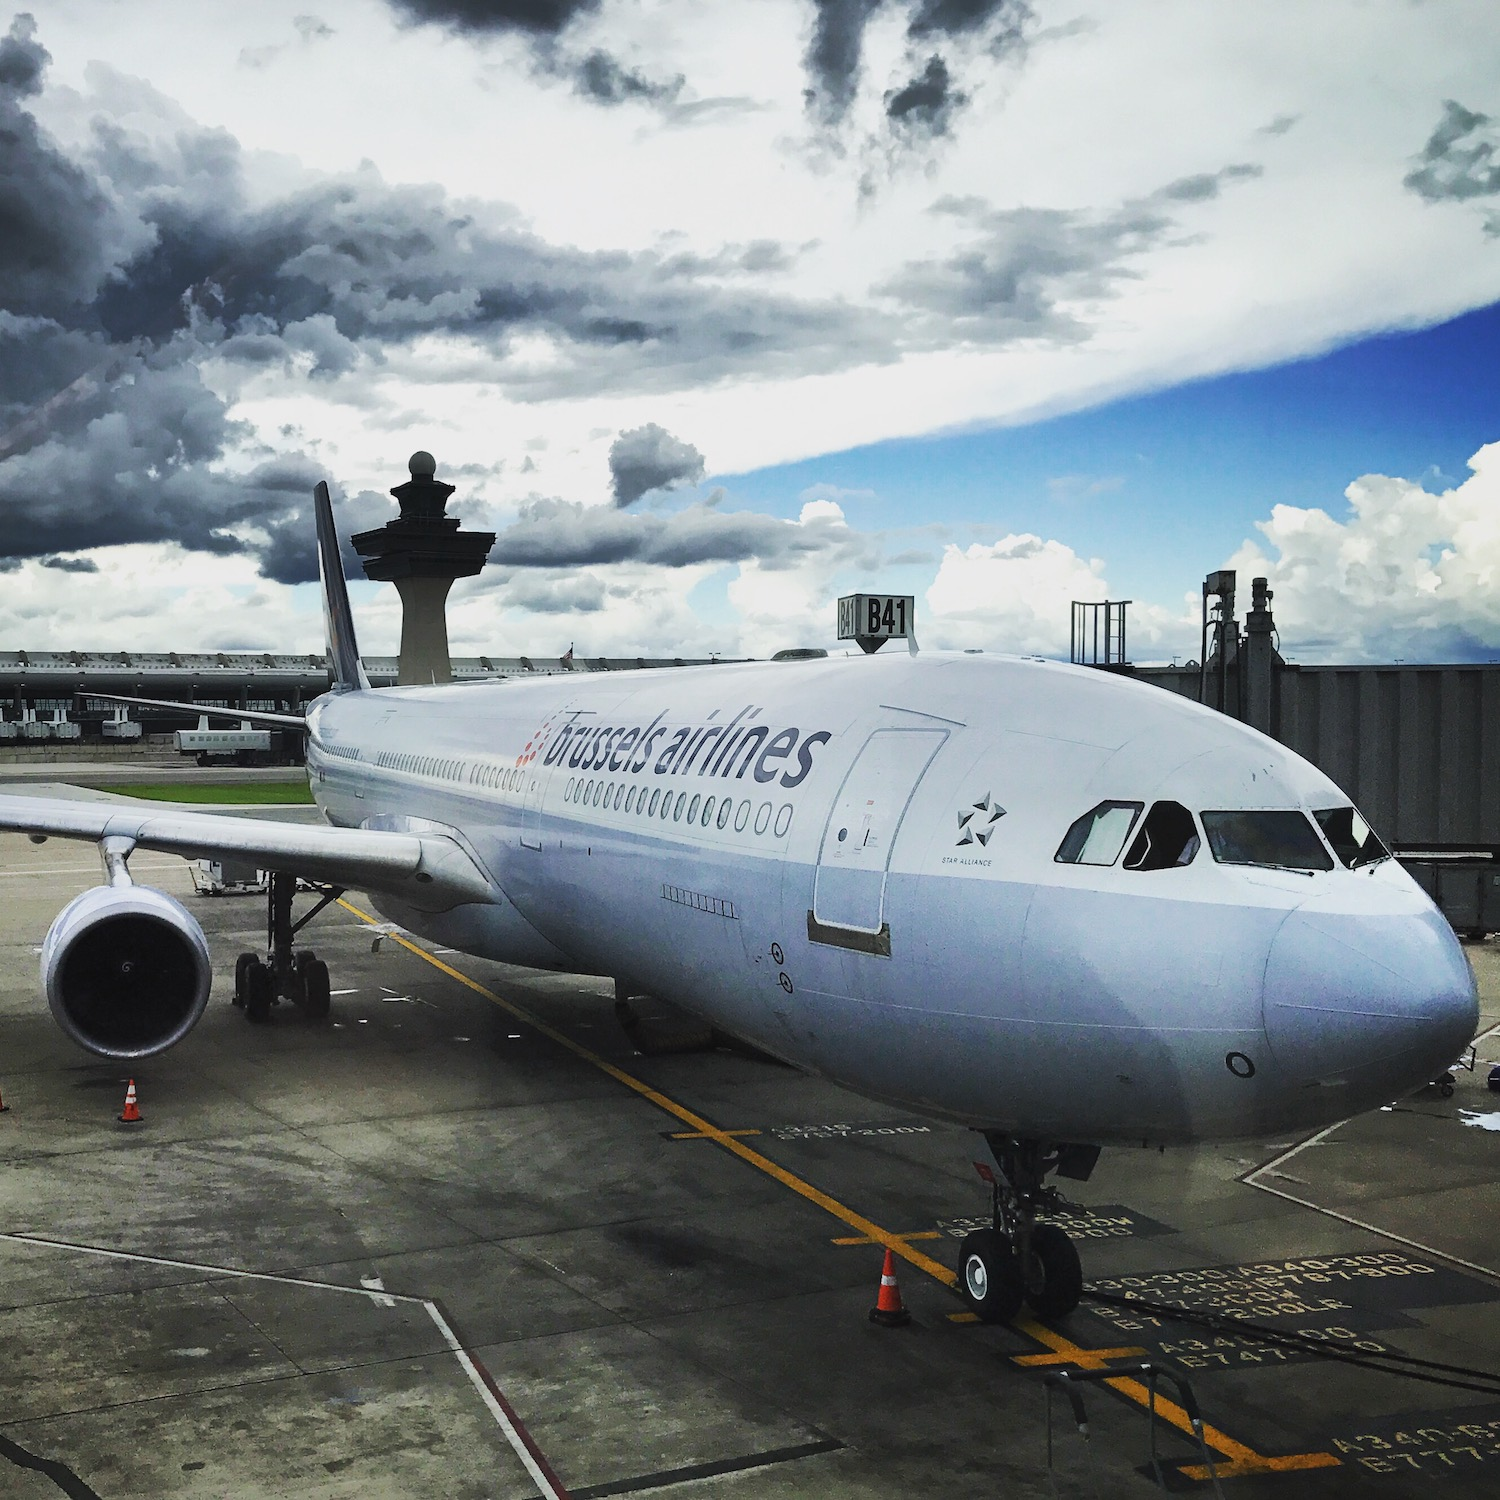 Brussels Airlines at the gate.